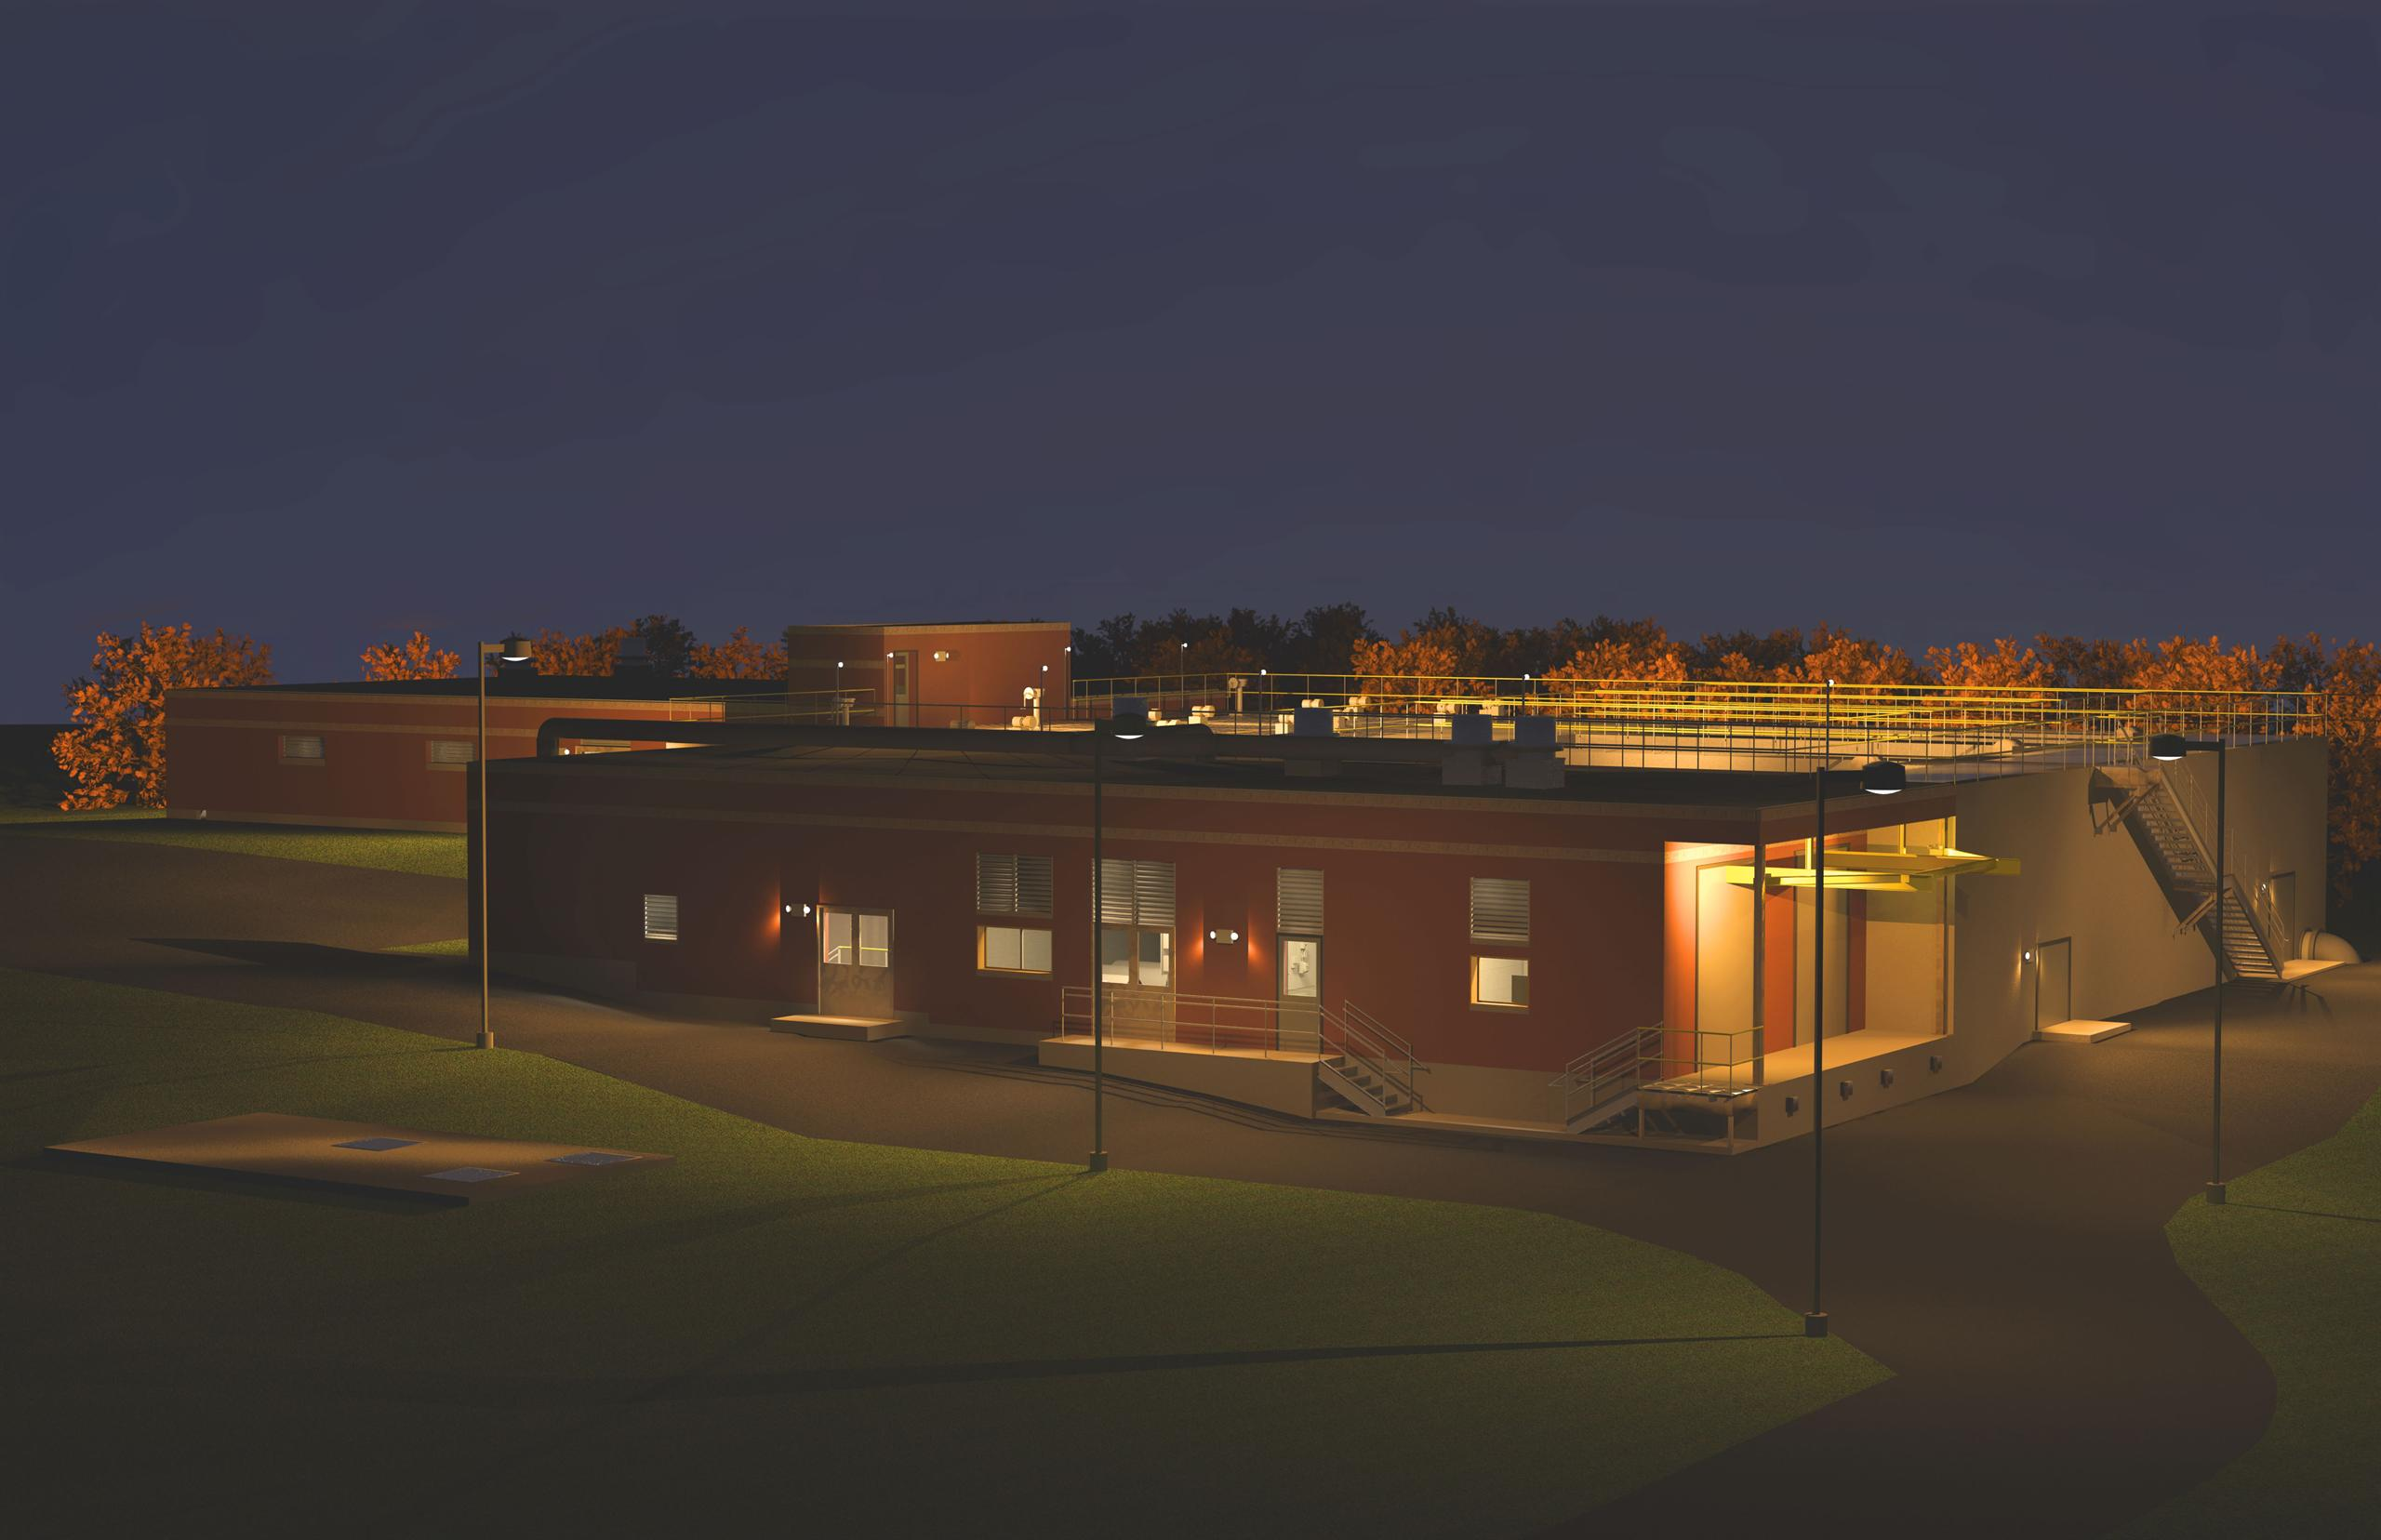 Visualisation of water treatment plant at night